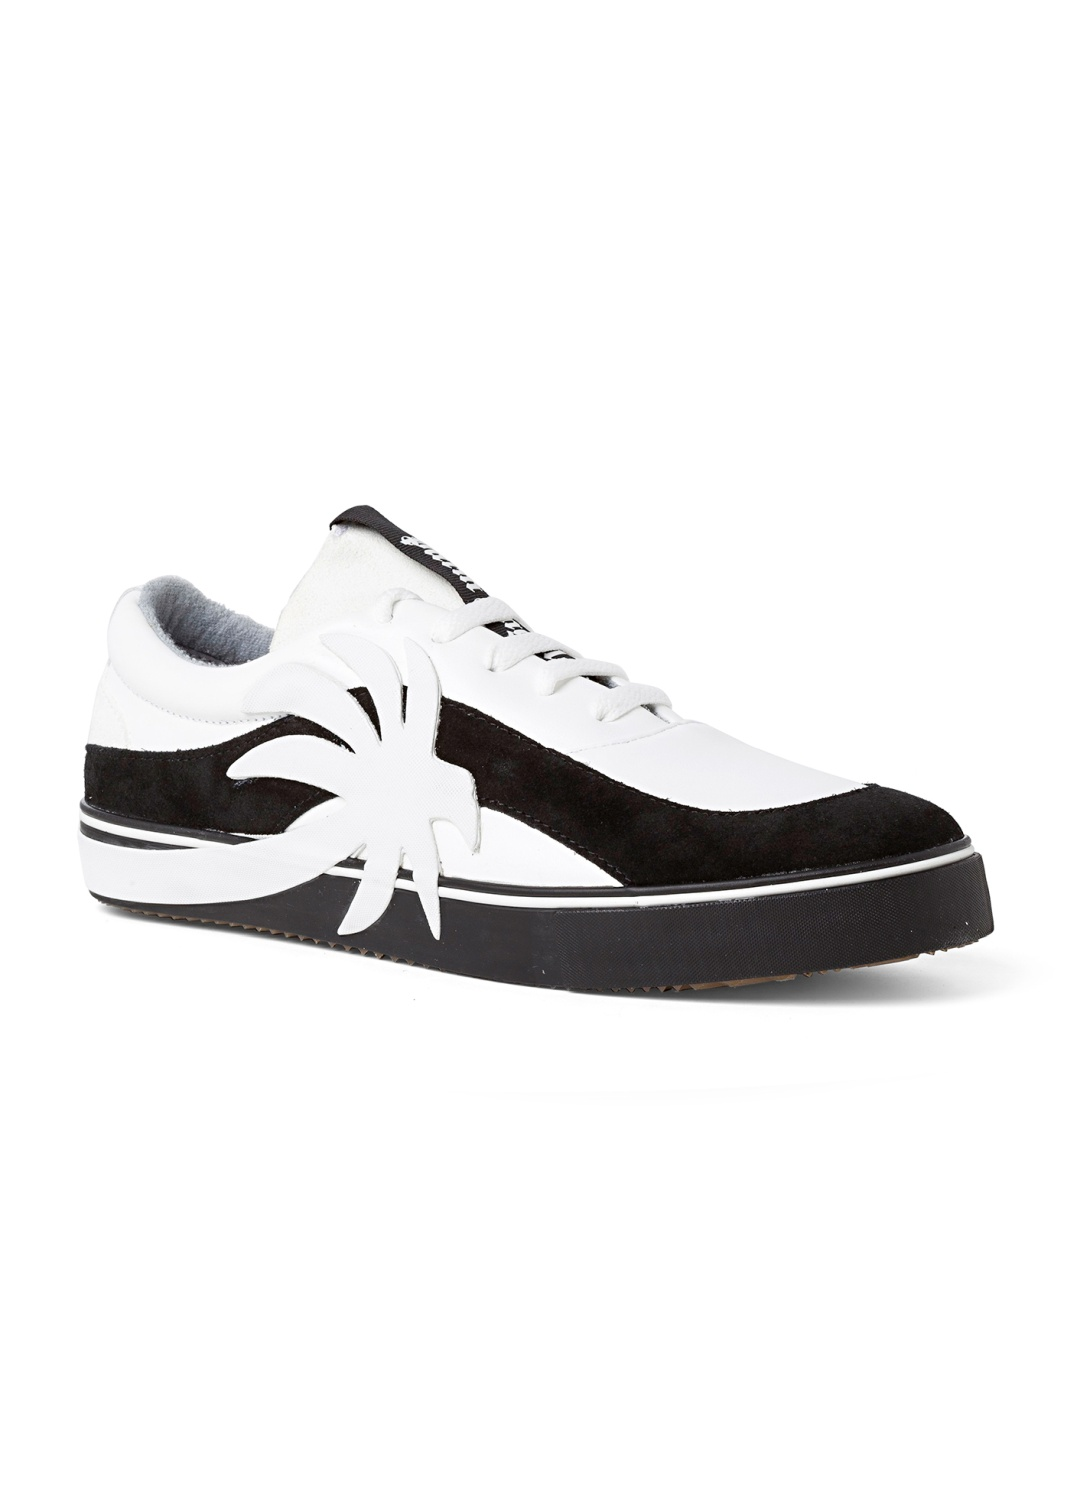 VULC PALM LOW image number 1